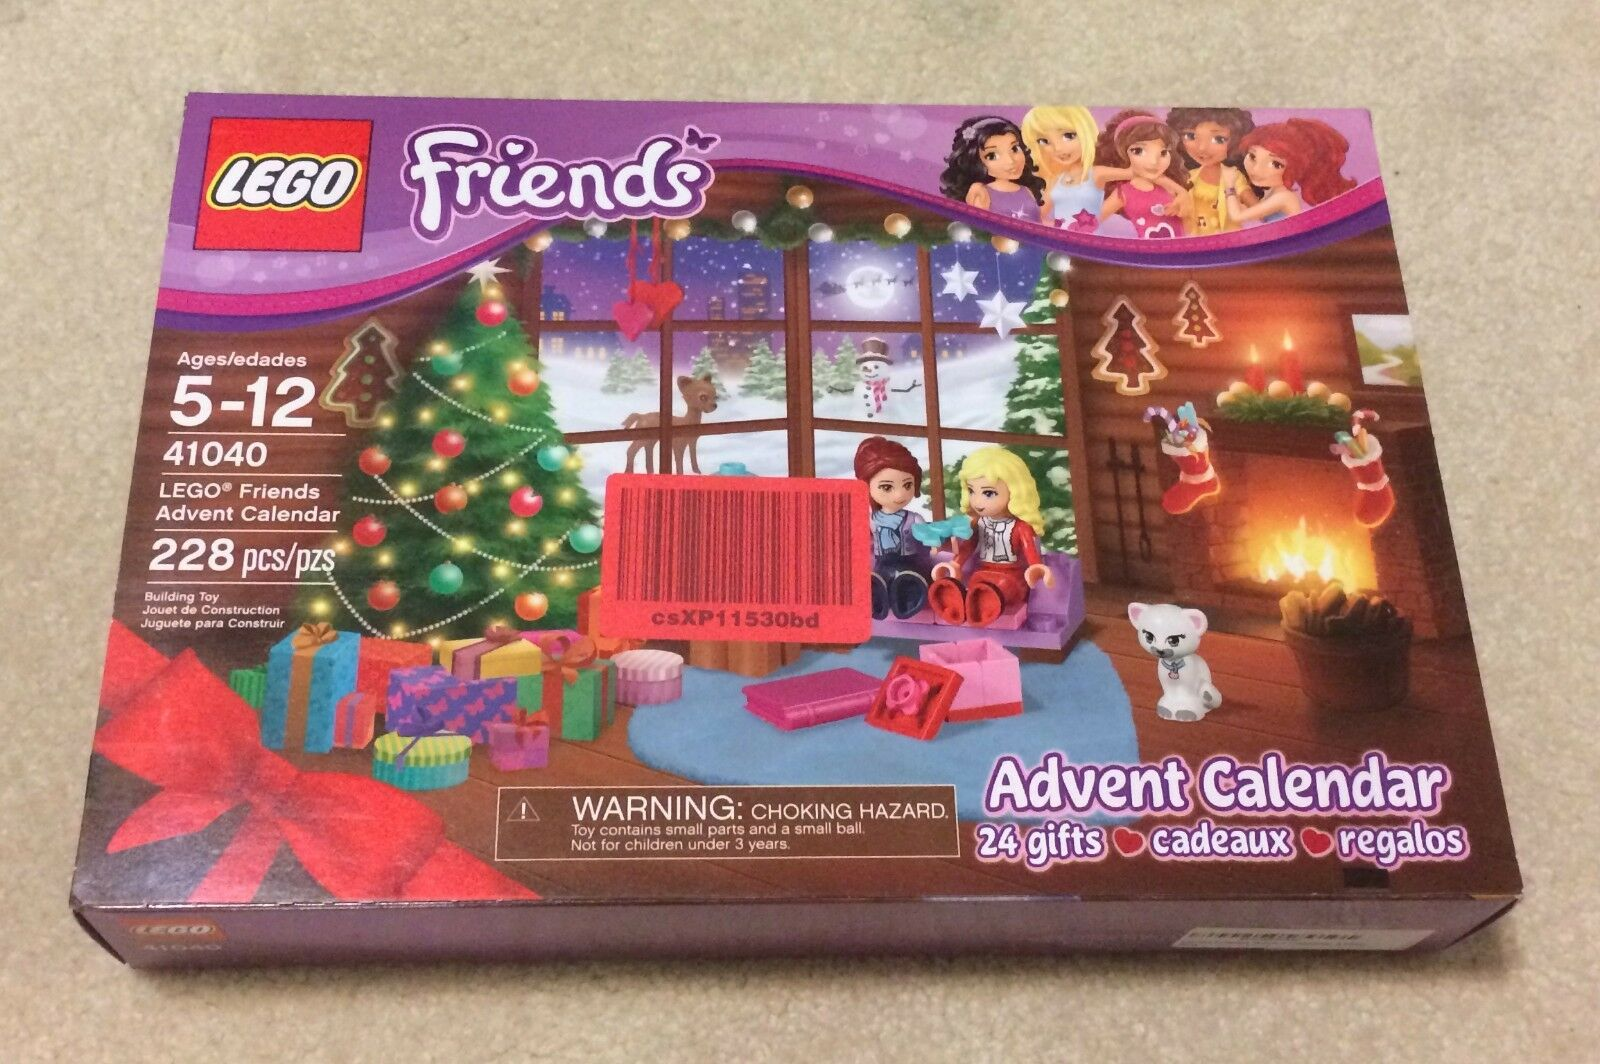 2015 LEGO Friends  41040 ADVENT CALENDAR 228 Pcs Nib 24 Gifts NEW SEALED  New in